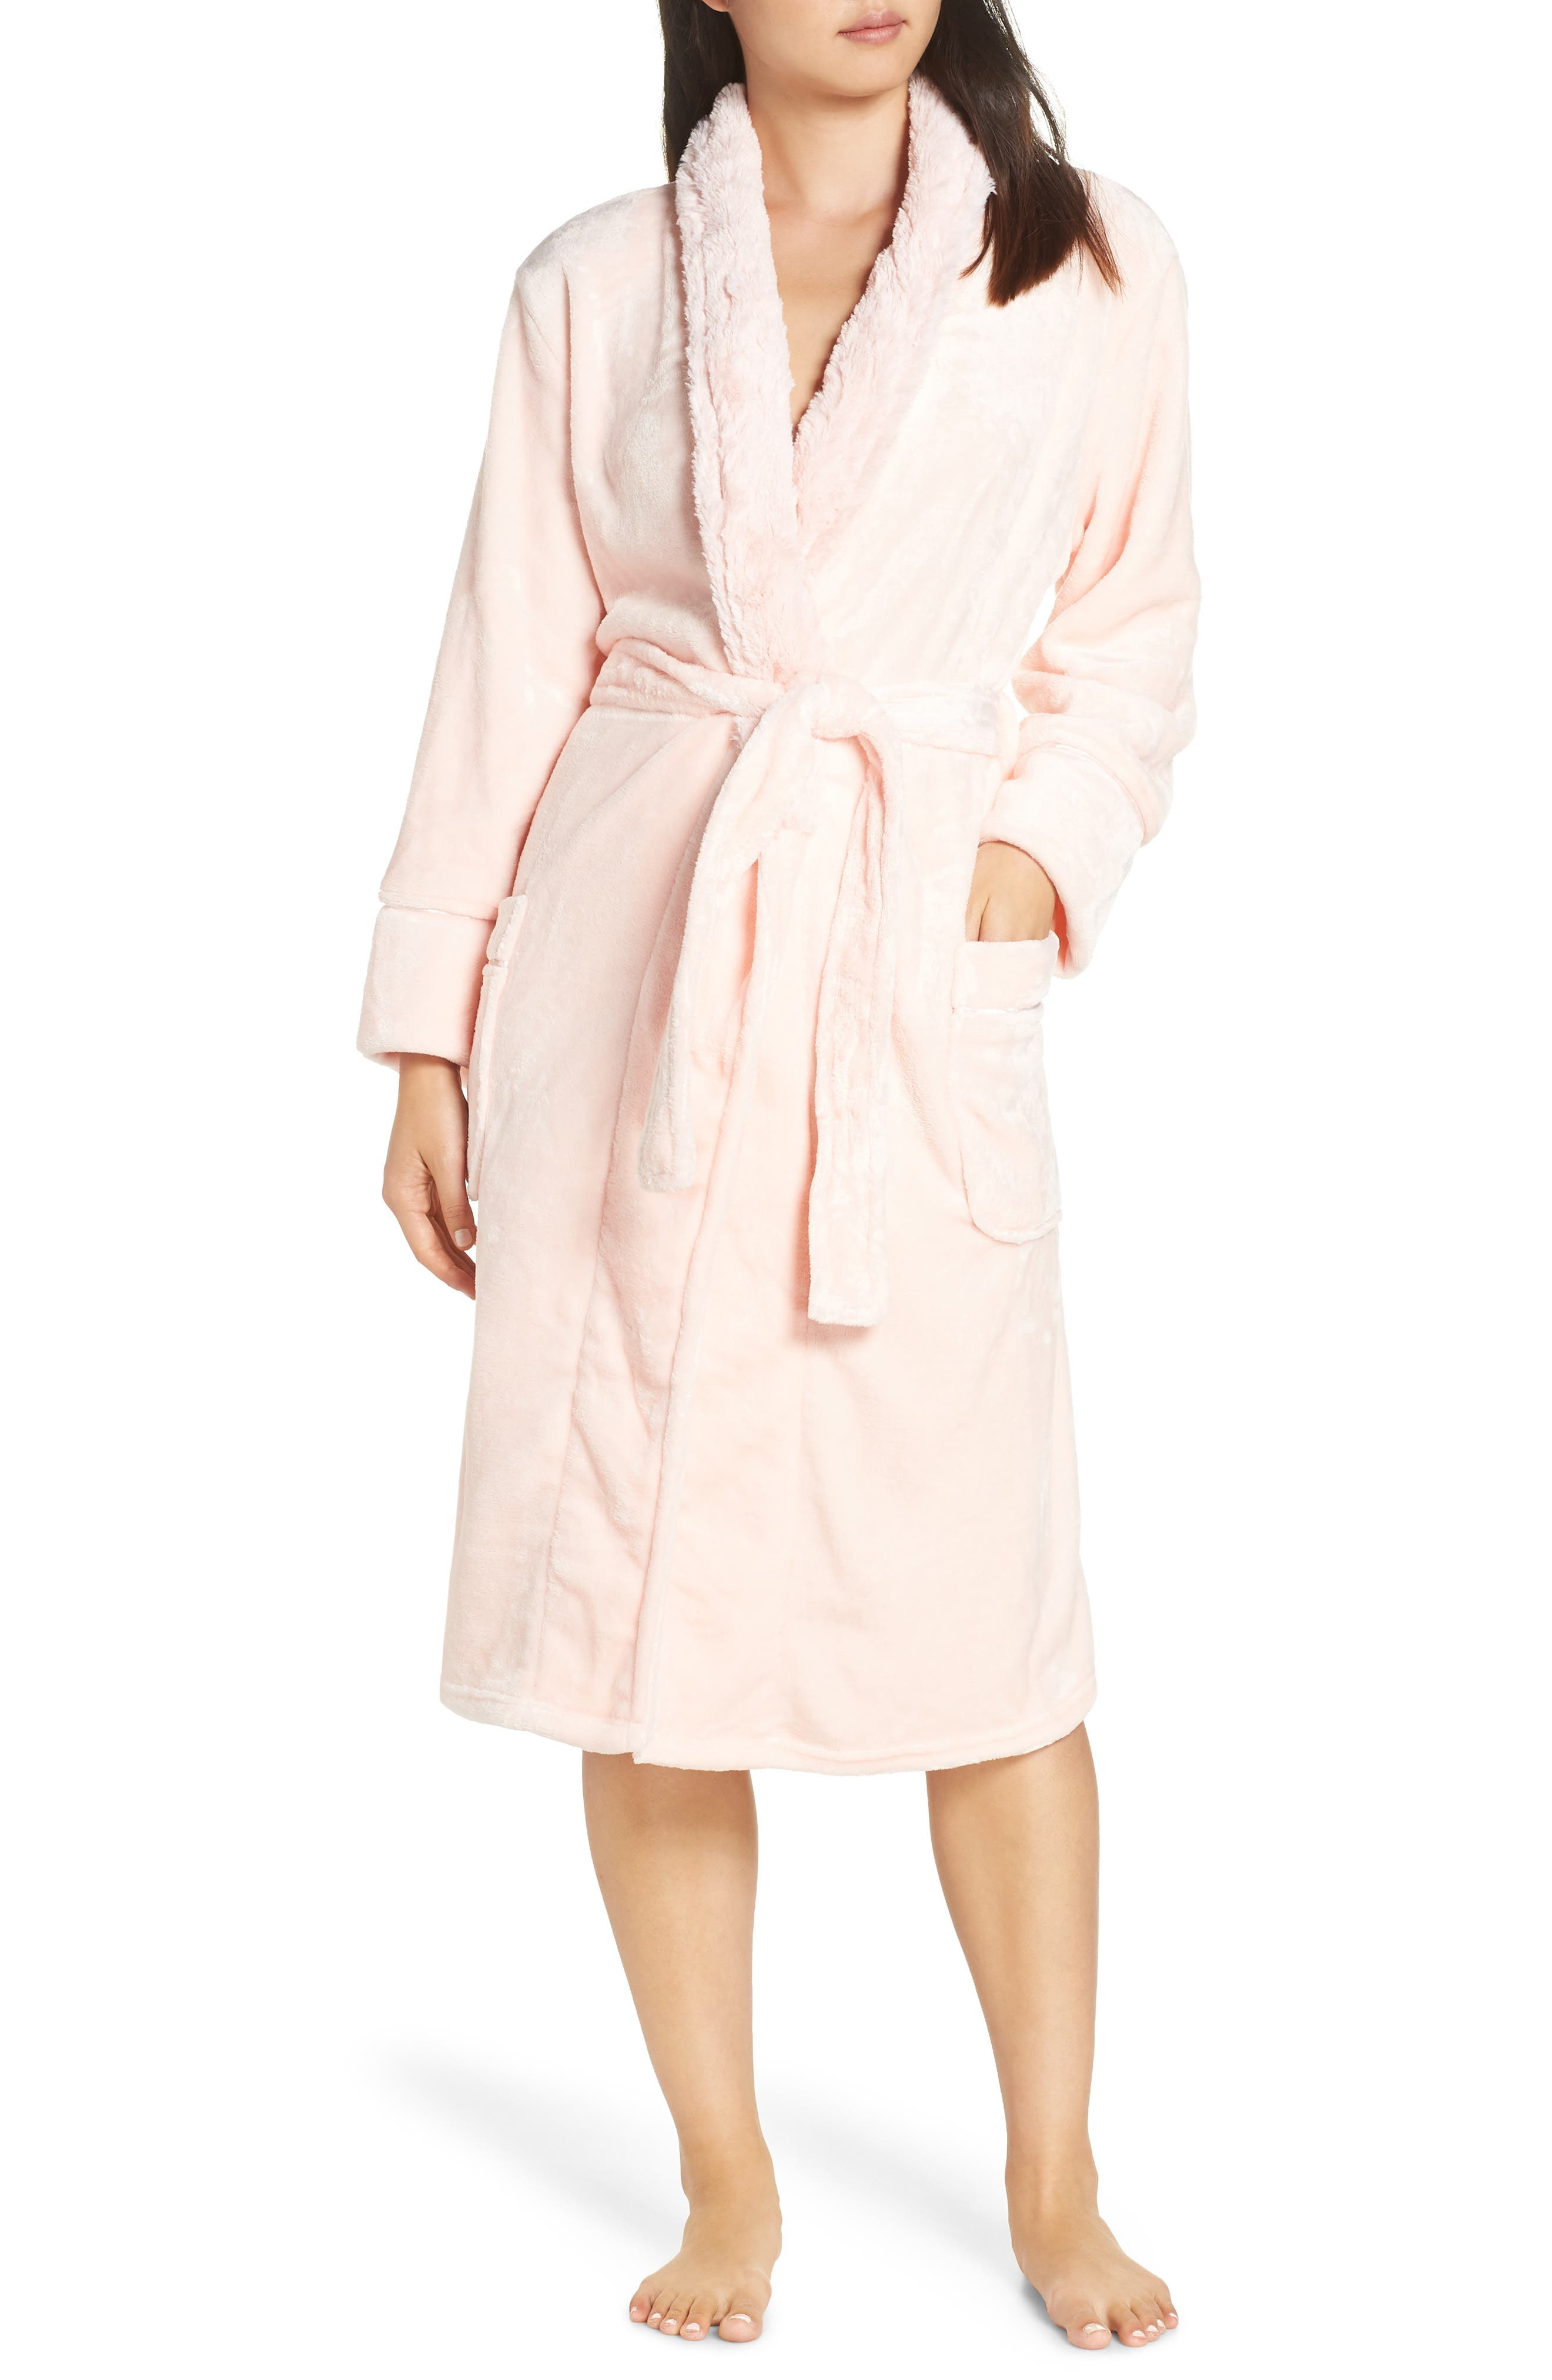 PJ SALVAGE Luxe Faux Fur Robe in Blush